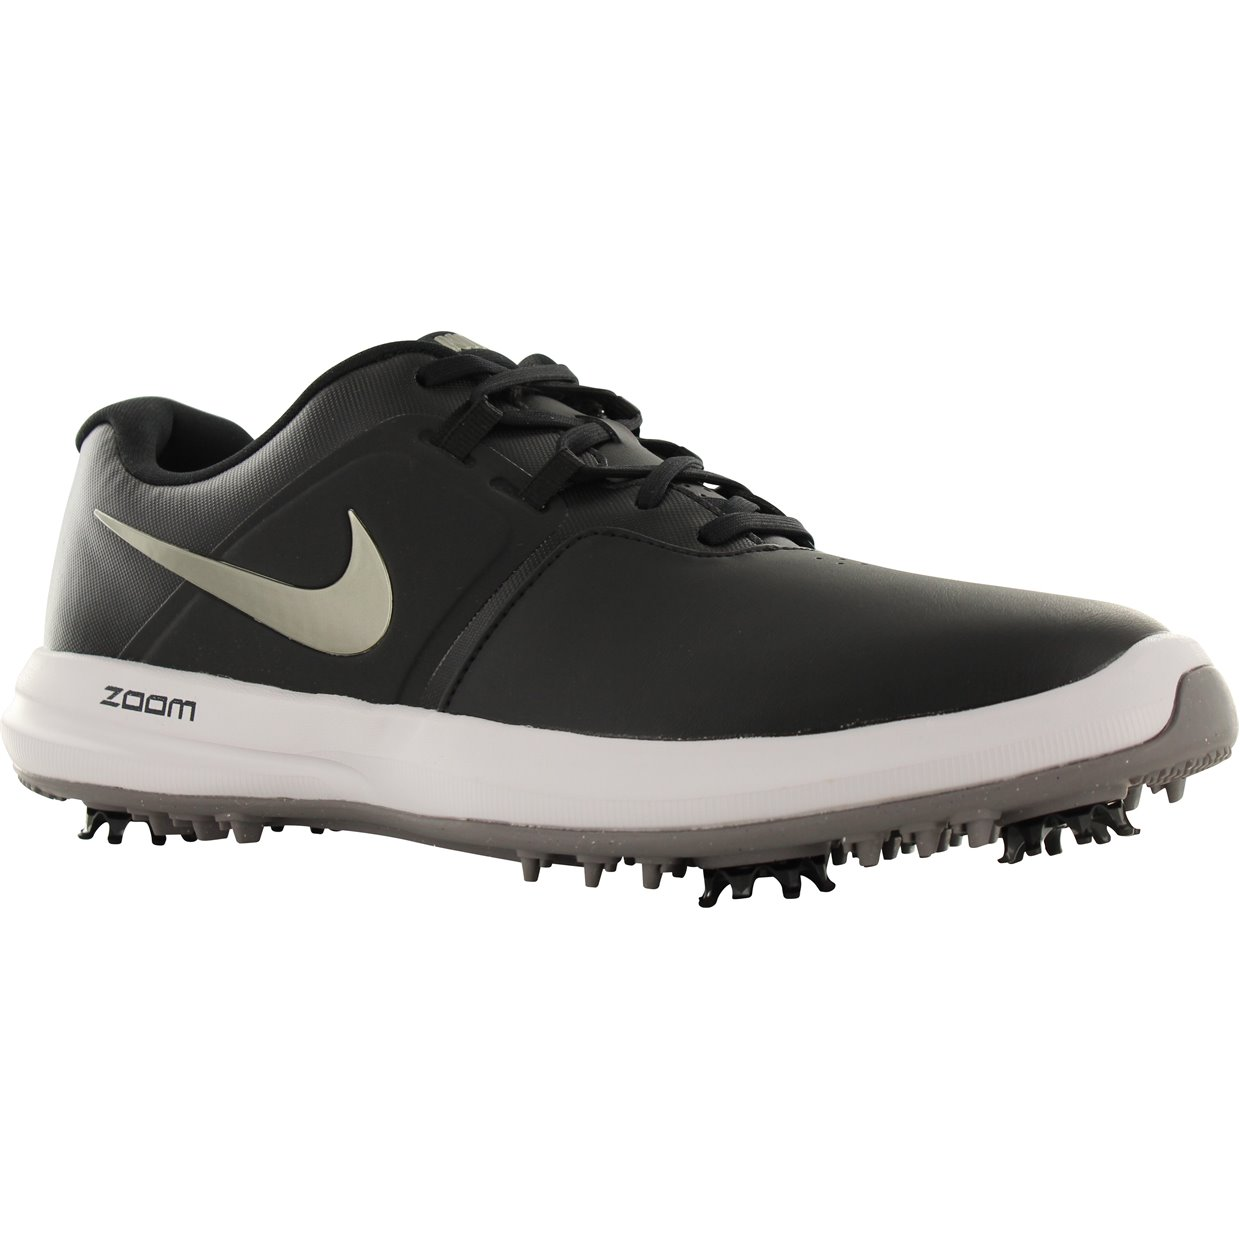 a1c85bdc Nike Air Zoom Victory Golf Shoe Shoes · Alternate Product Image of Right  Shoe Side Angle ...